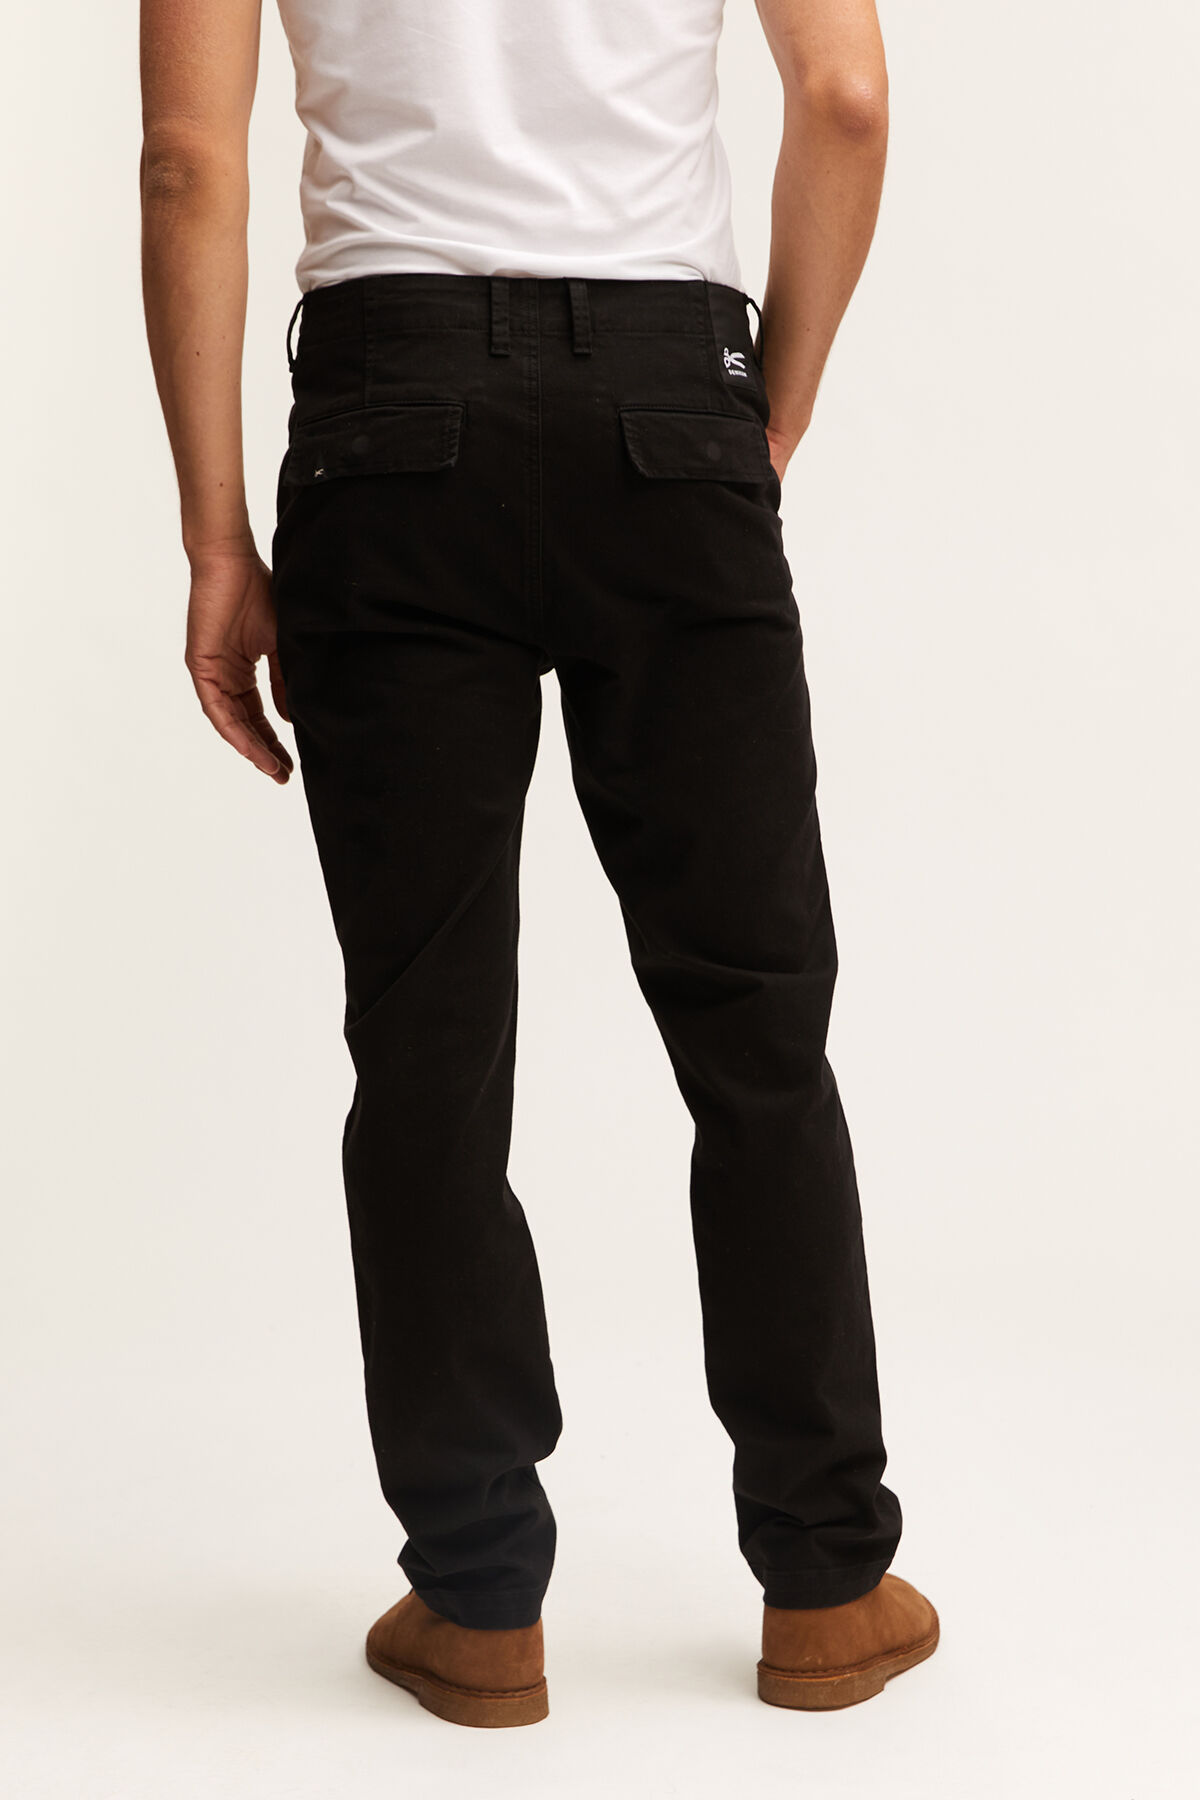 EDGE PANT Soft Cotton Twill - Straight Fit